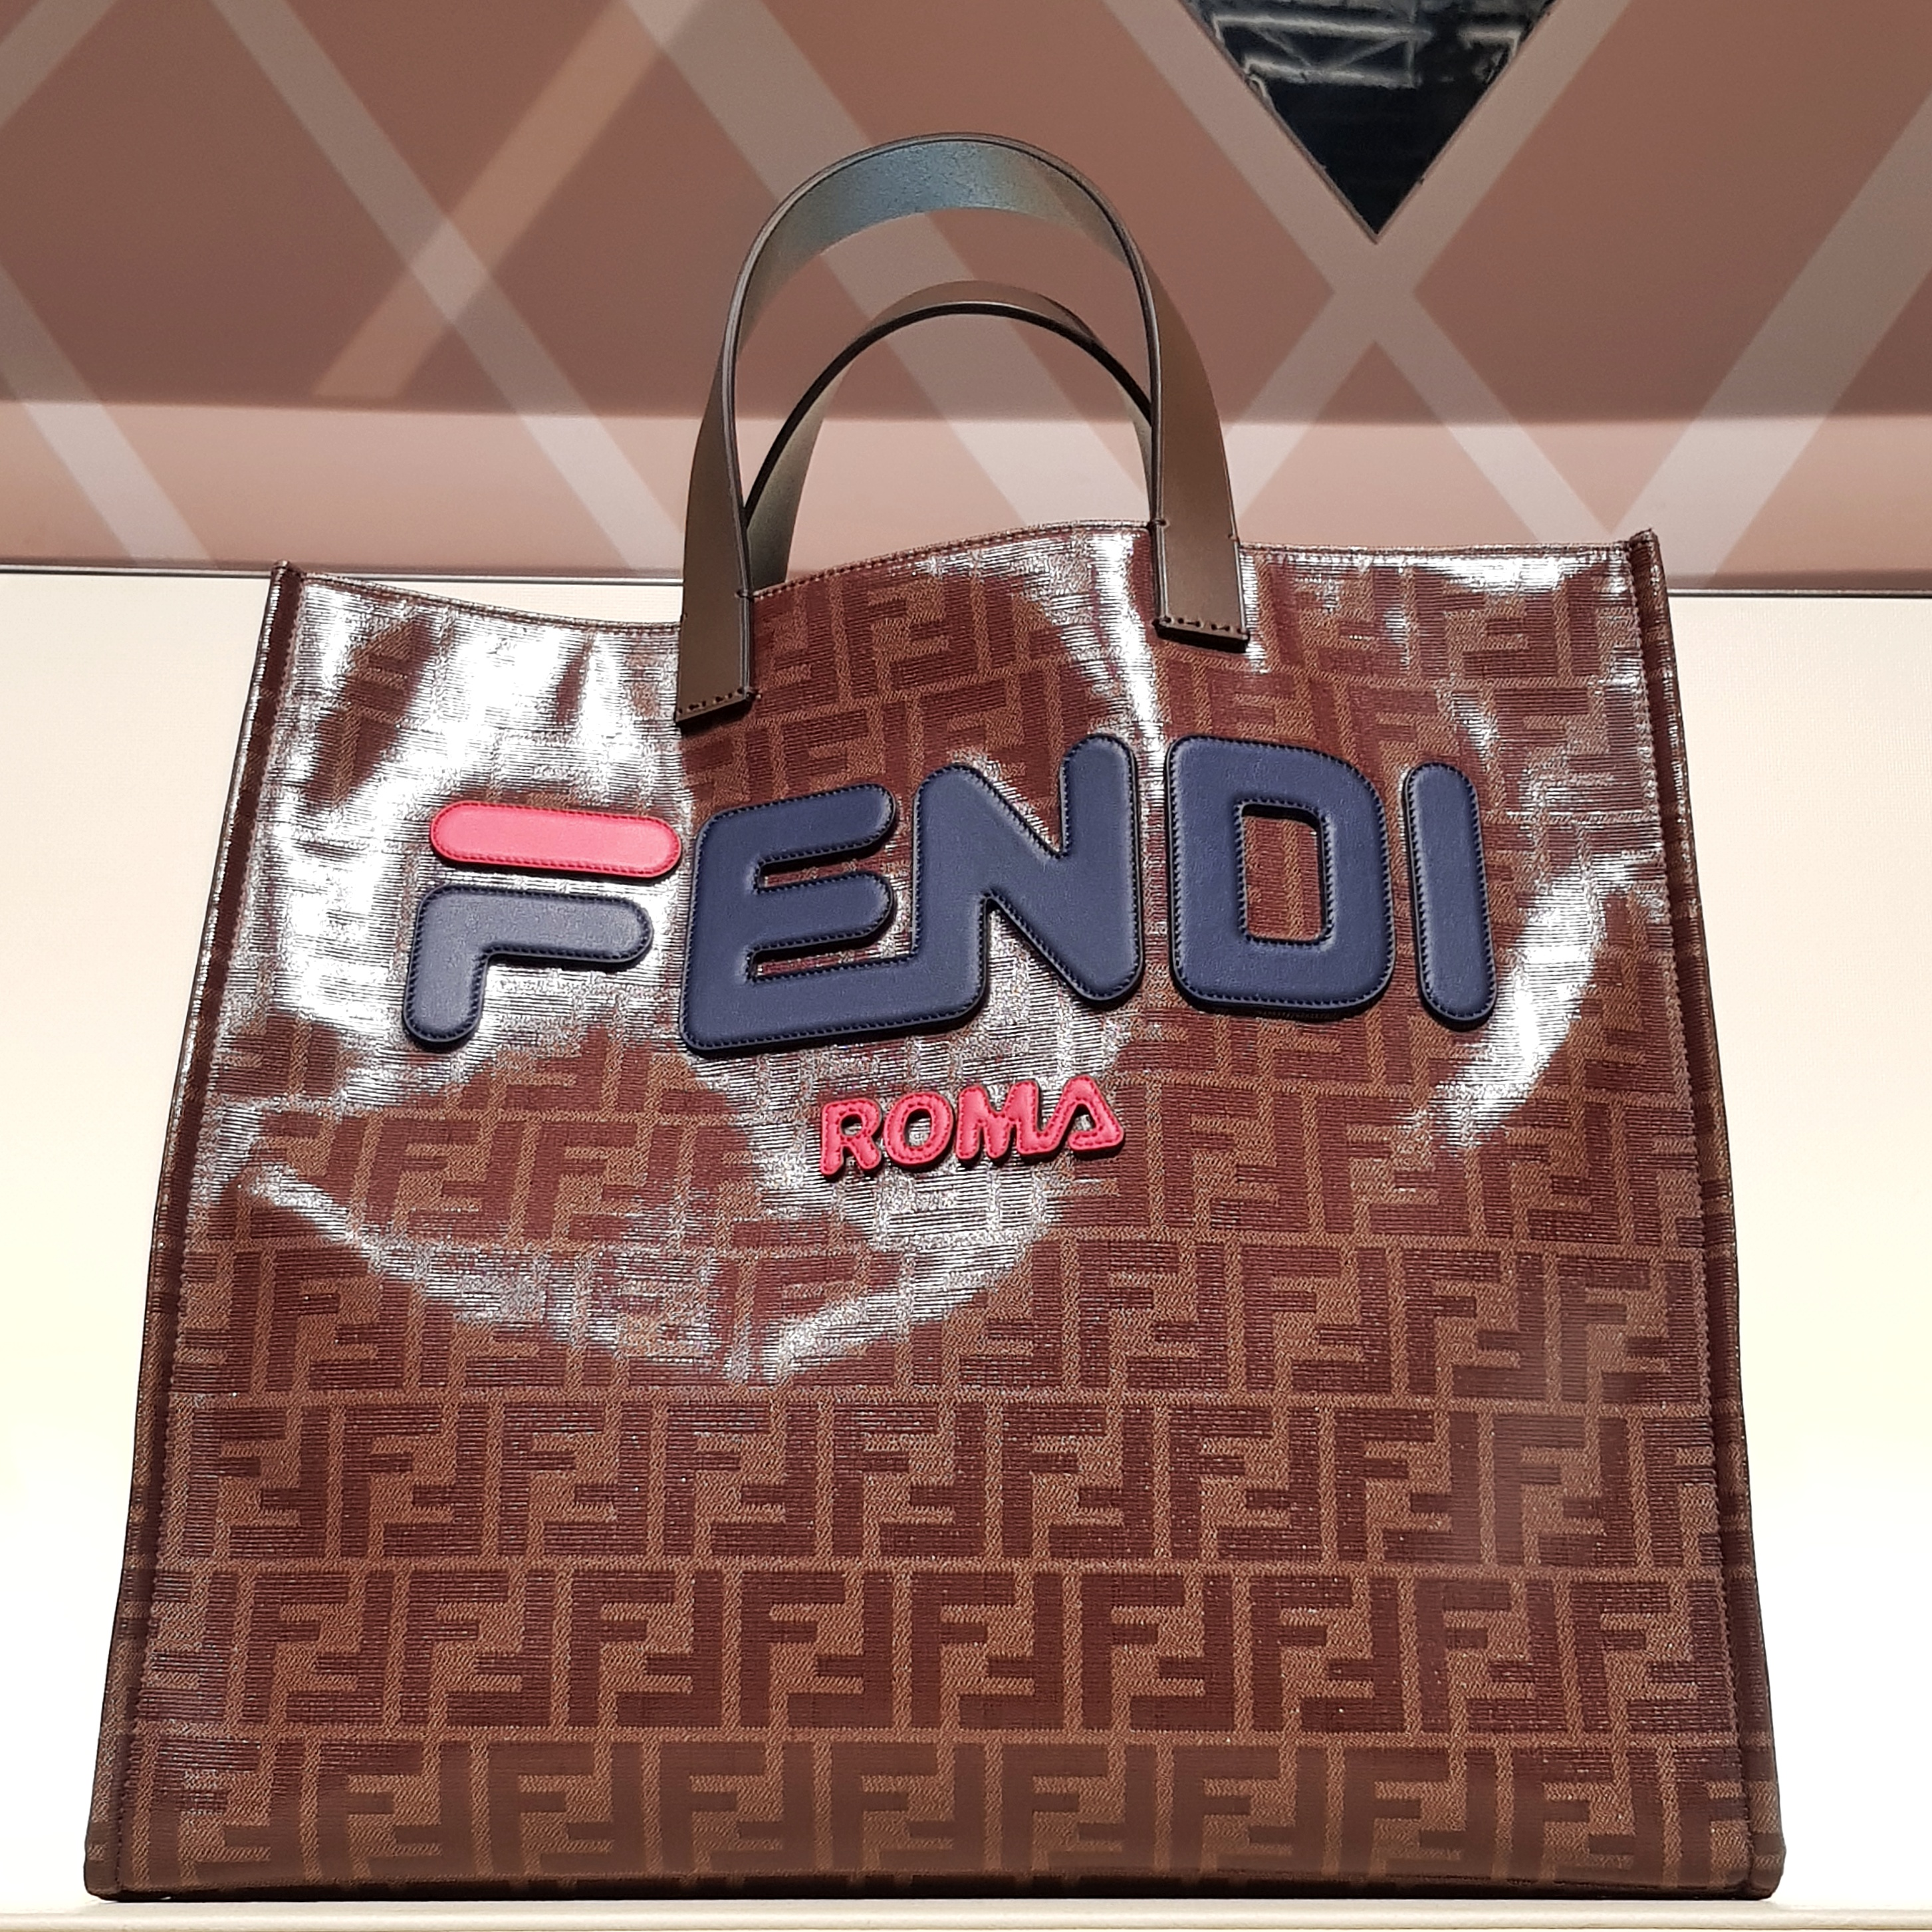 bfa19f3084 I thought there was a collaboration between Fendi and Fila LOL. The tote s  Fendi logo reminded me of Fila s logo!